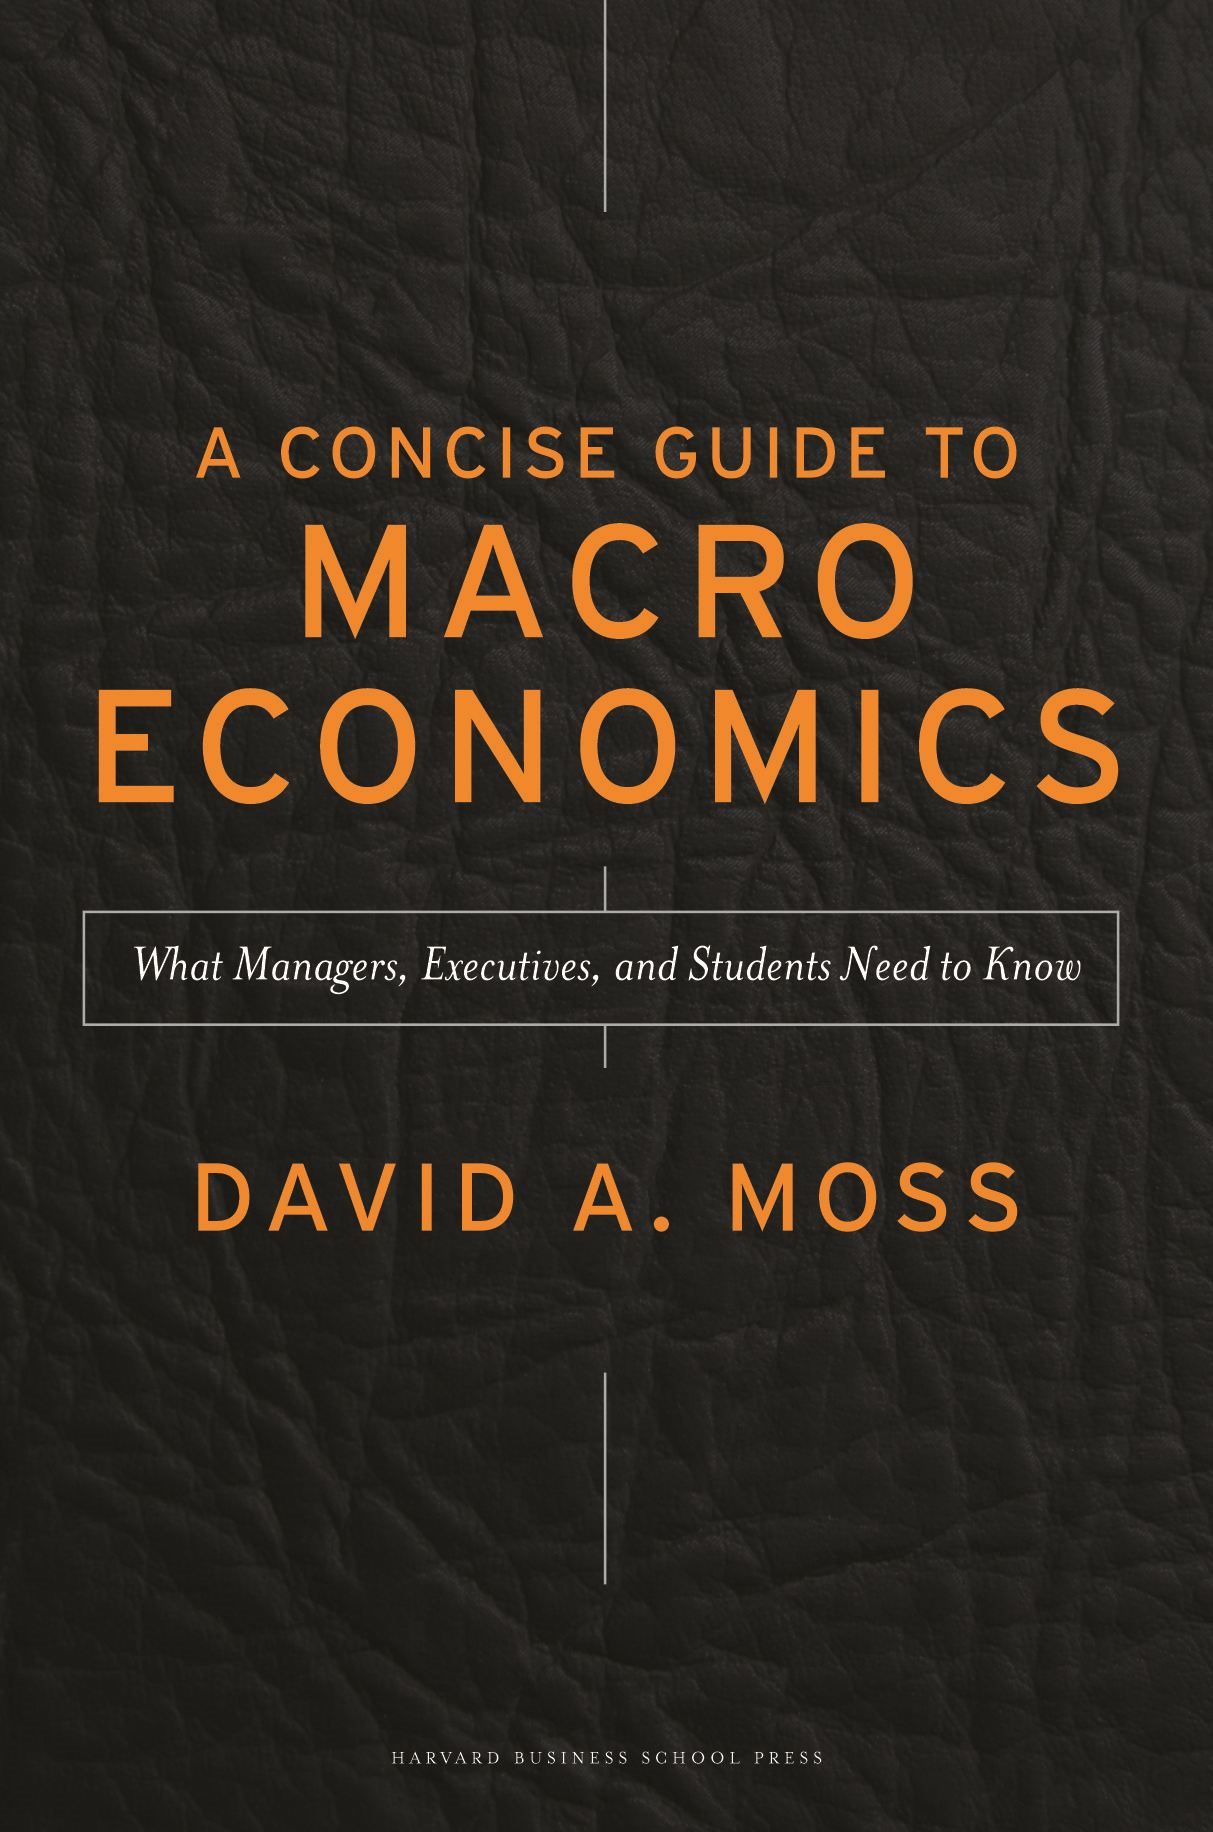 A Concise Guide to Macroeconomics By: David A. Moss